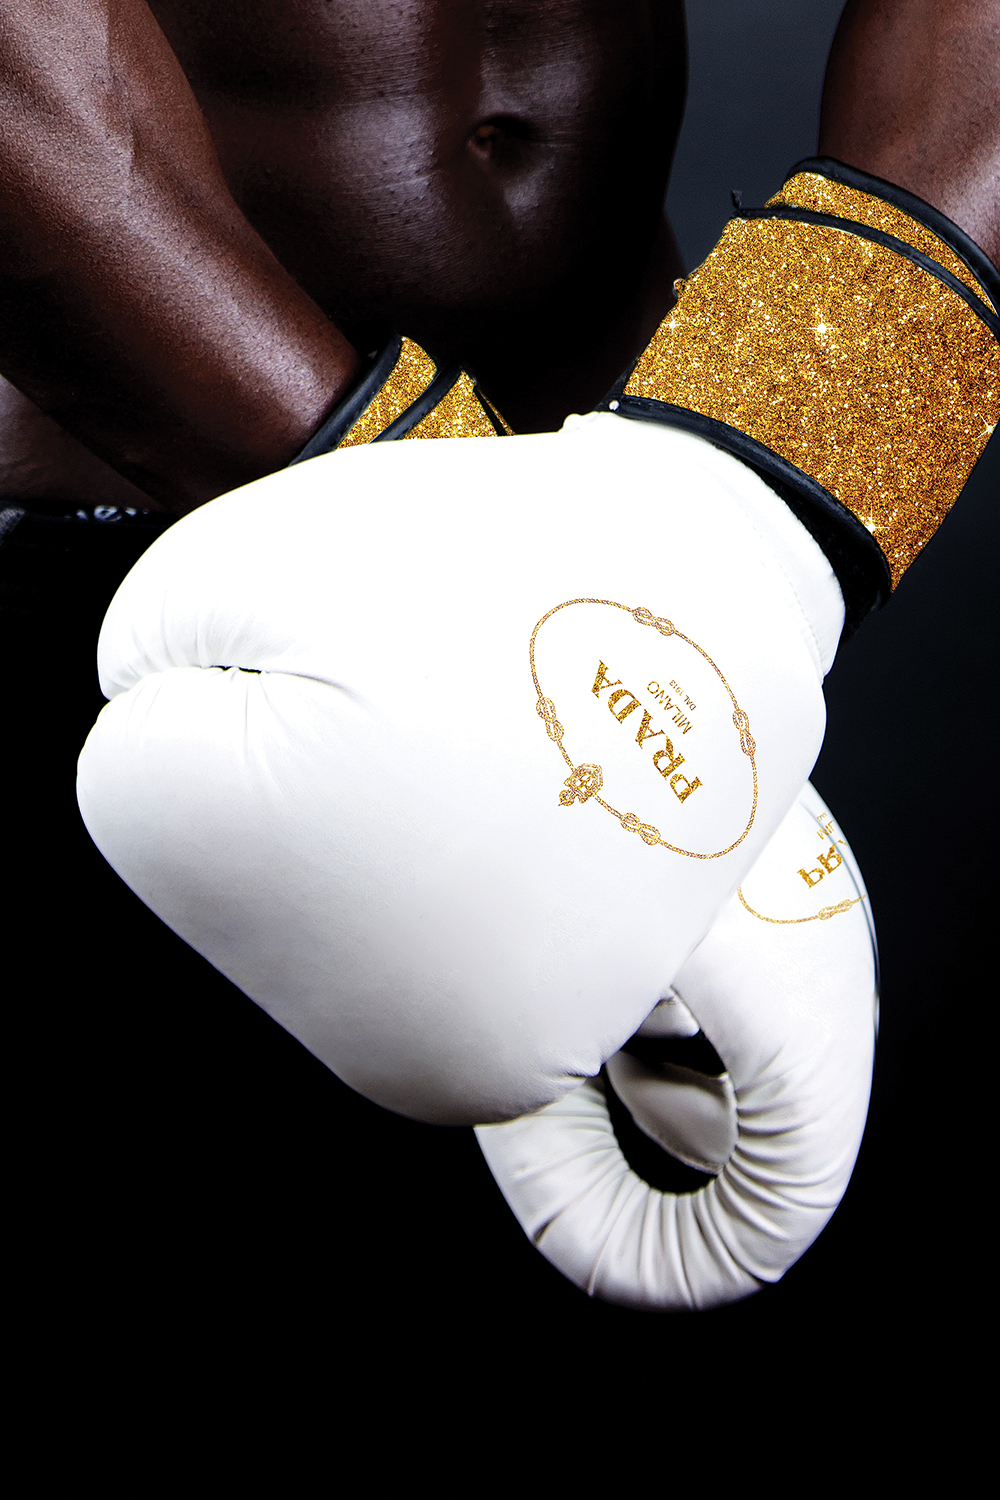 Photo of a black man with crossed arms wearing white boxing gloves with gold trim and a Prada logo